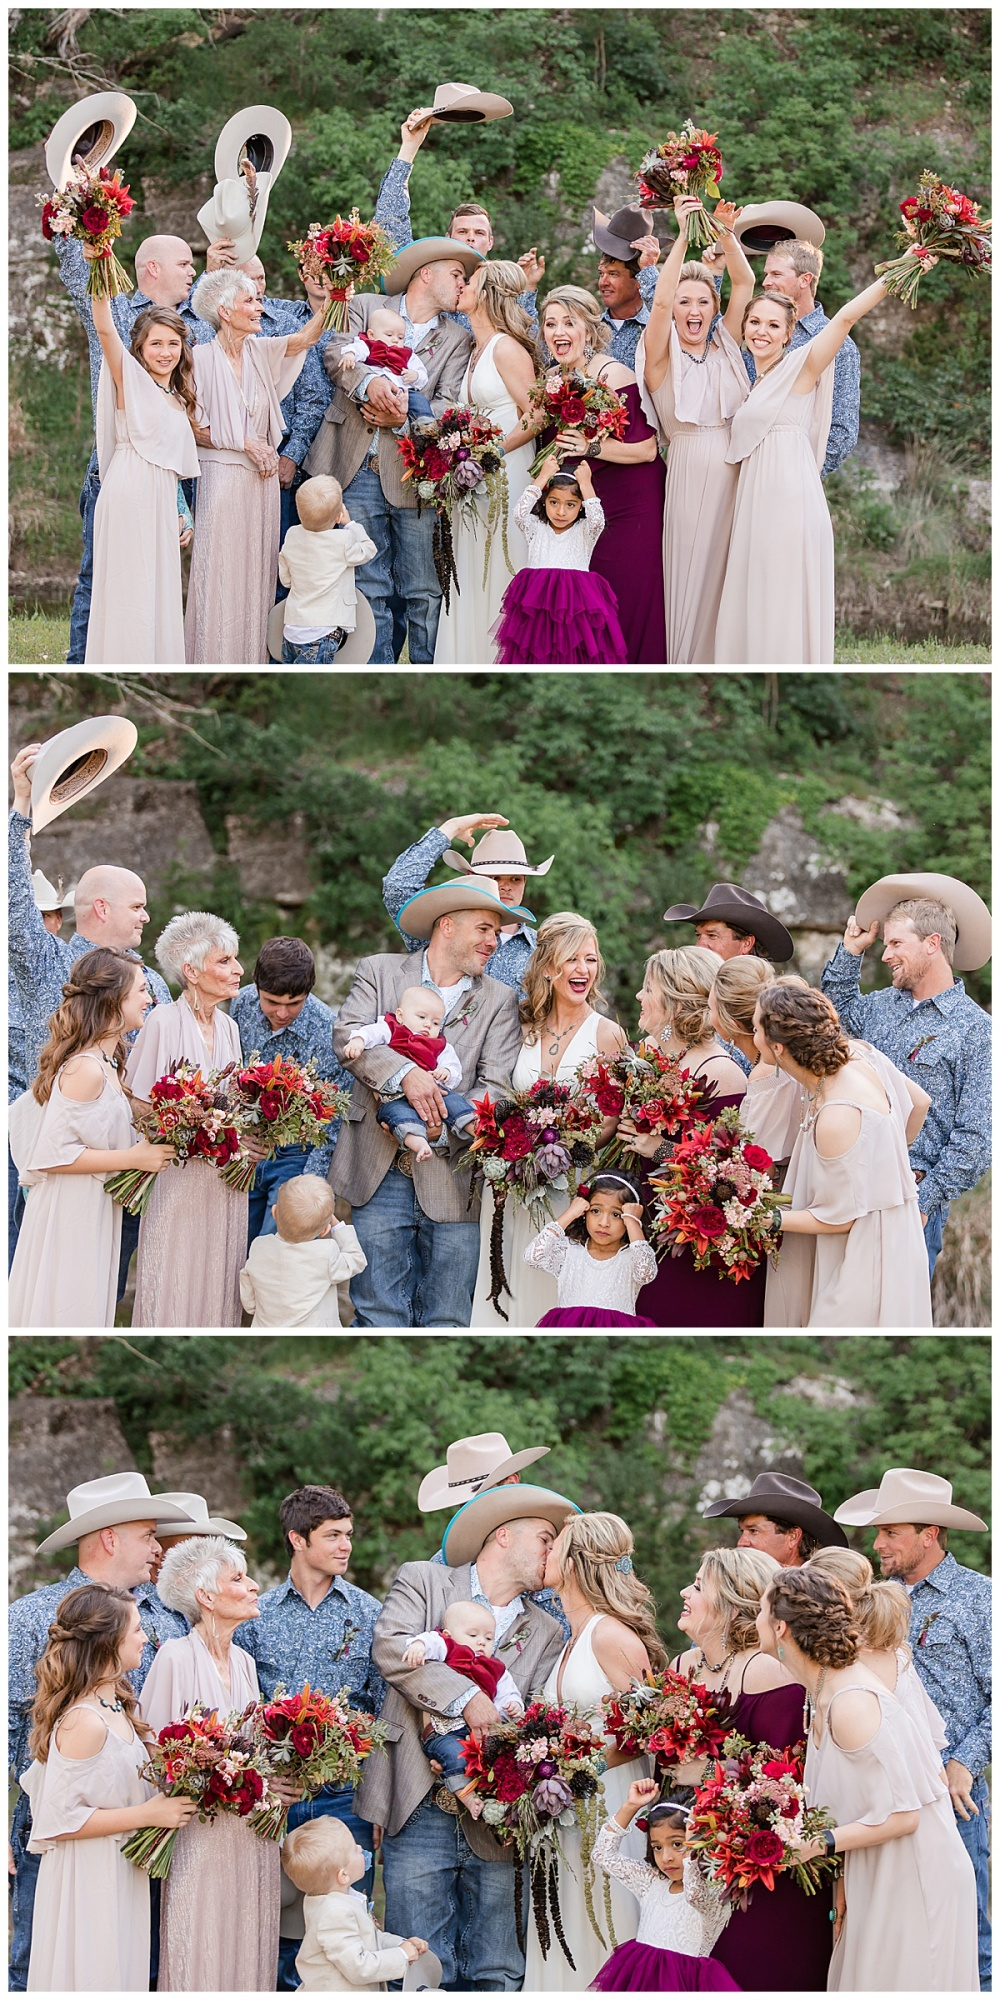 Eagle-Dancer-Ranch-Boerne-Texas-Wedding-Party-Barn-Carly-Barton-Photography_0035.jpg